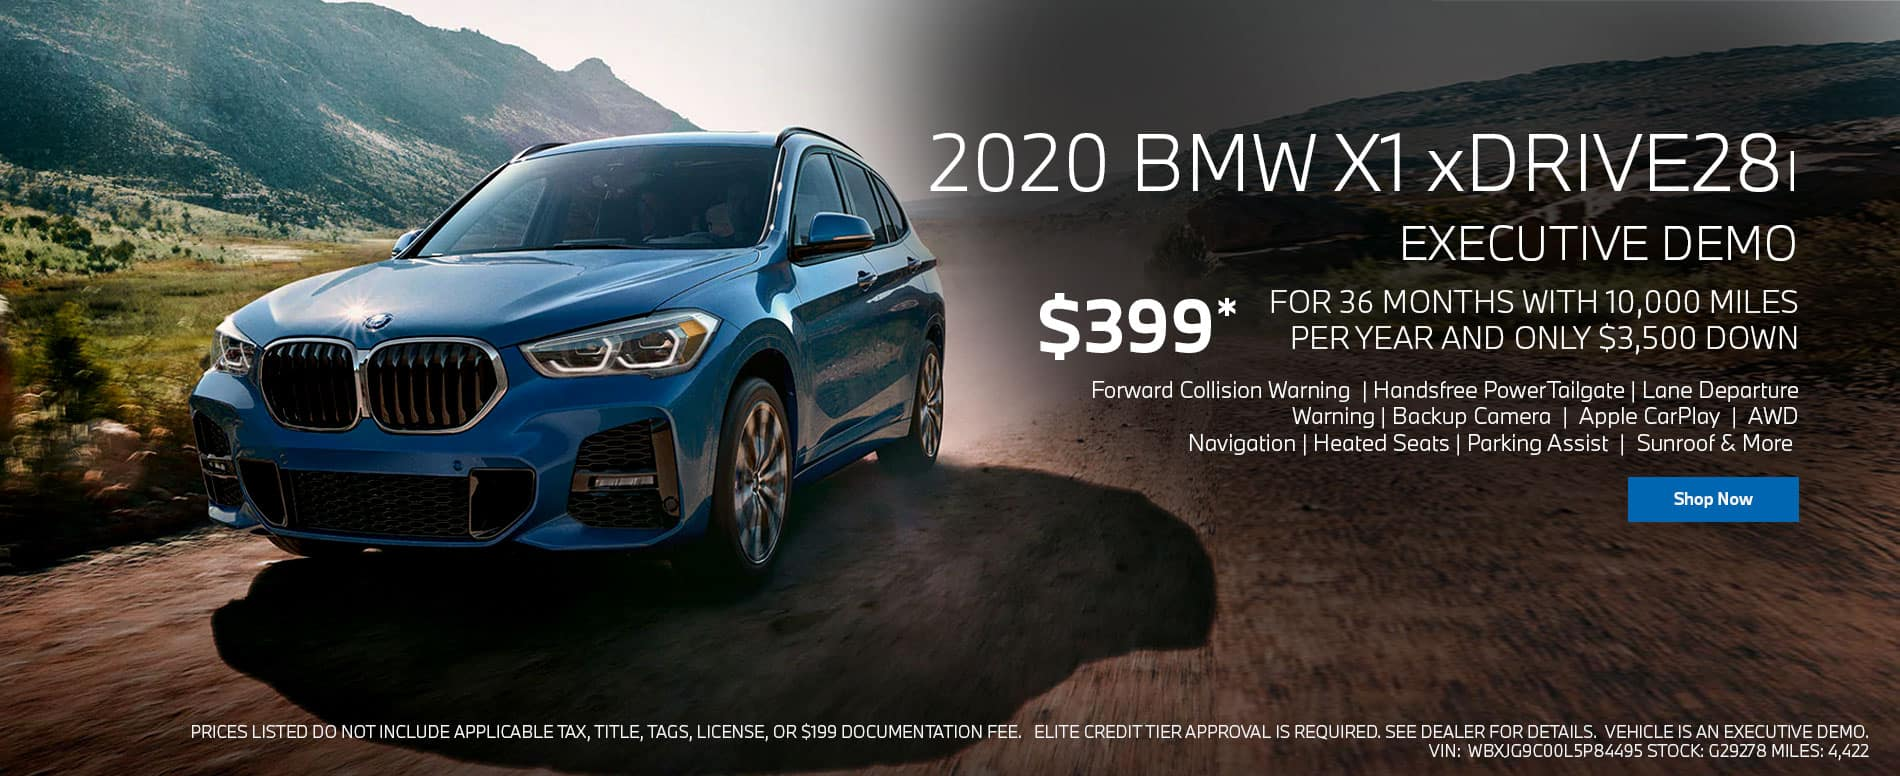 2020-X1-xDRIVE-28-i-_-D-and-R-South_G29278